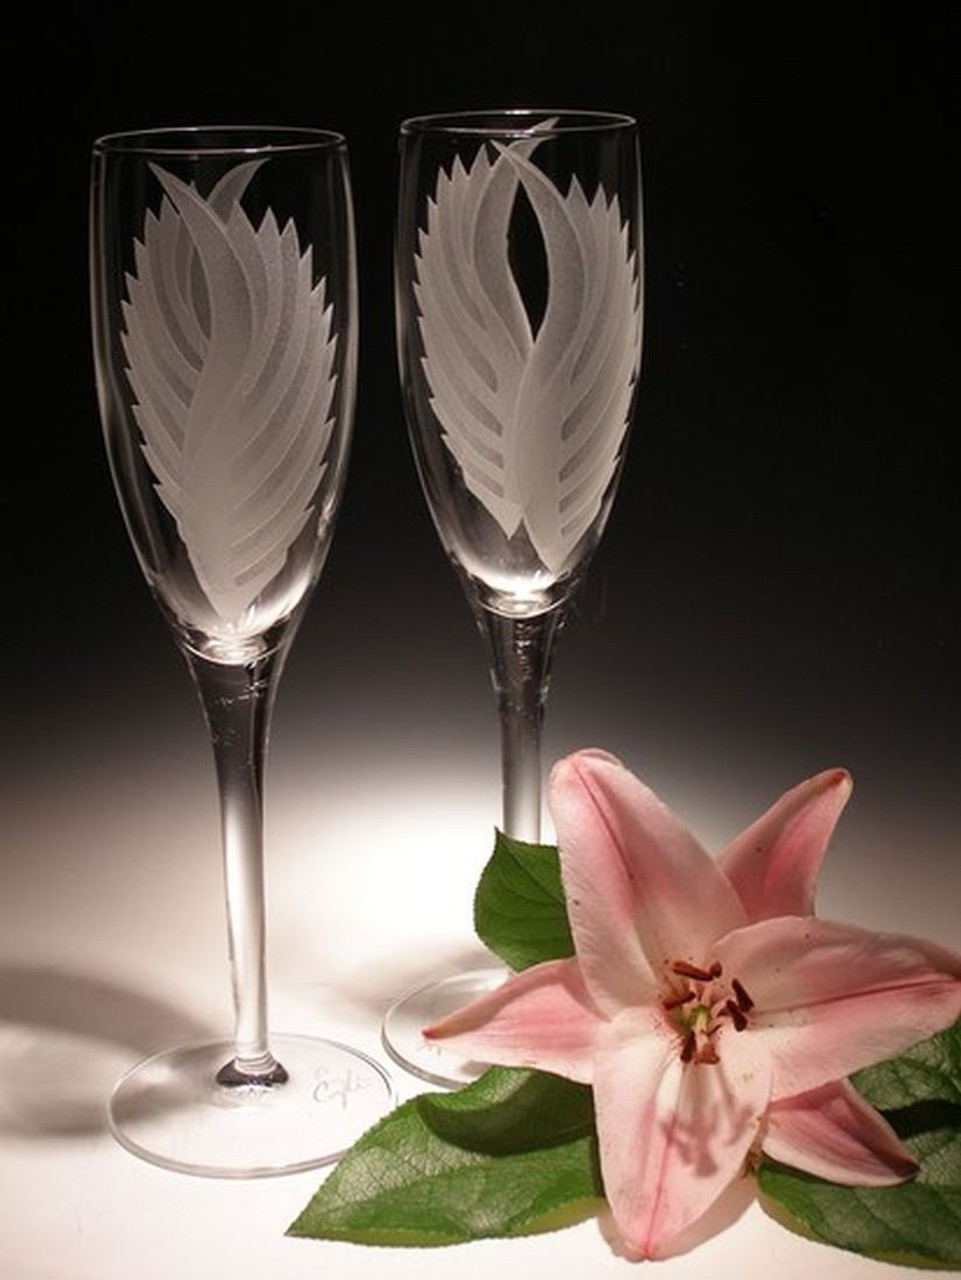 Hand Carved Crystal Champagne Flutes - 7 oz - Set of 2 - Personalized